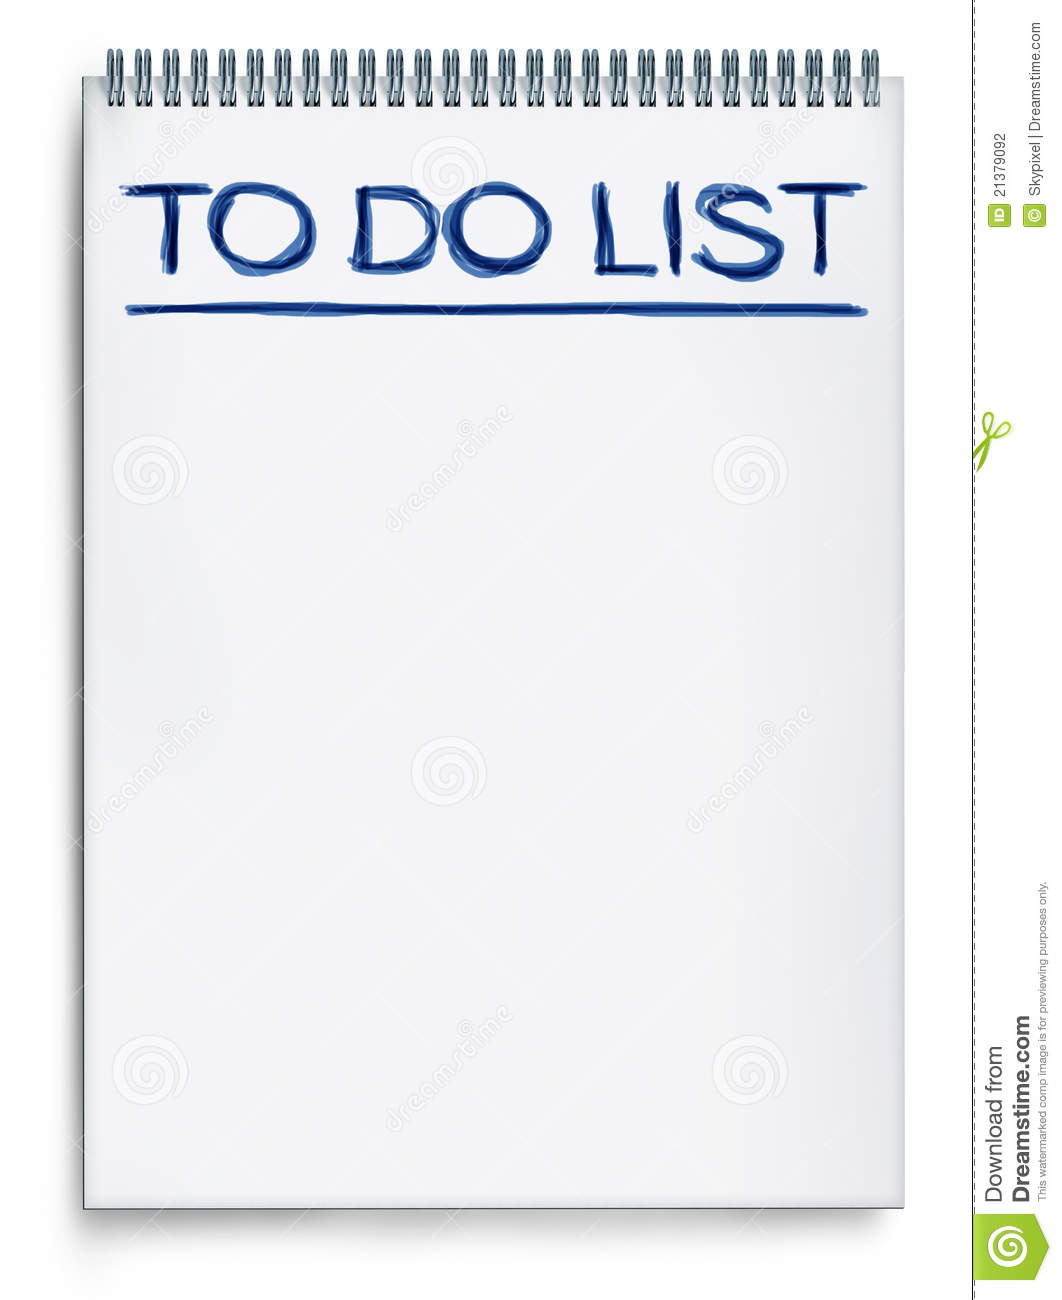 It's just a picture of Astounding To Do List Images